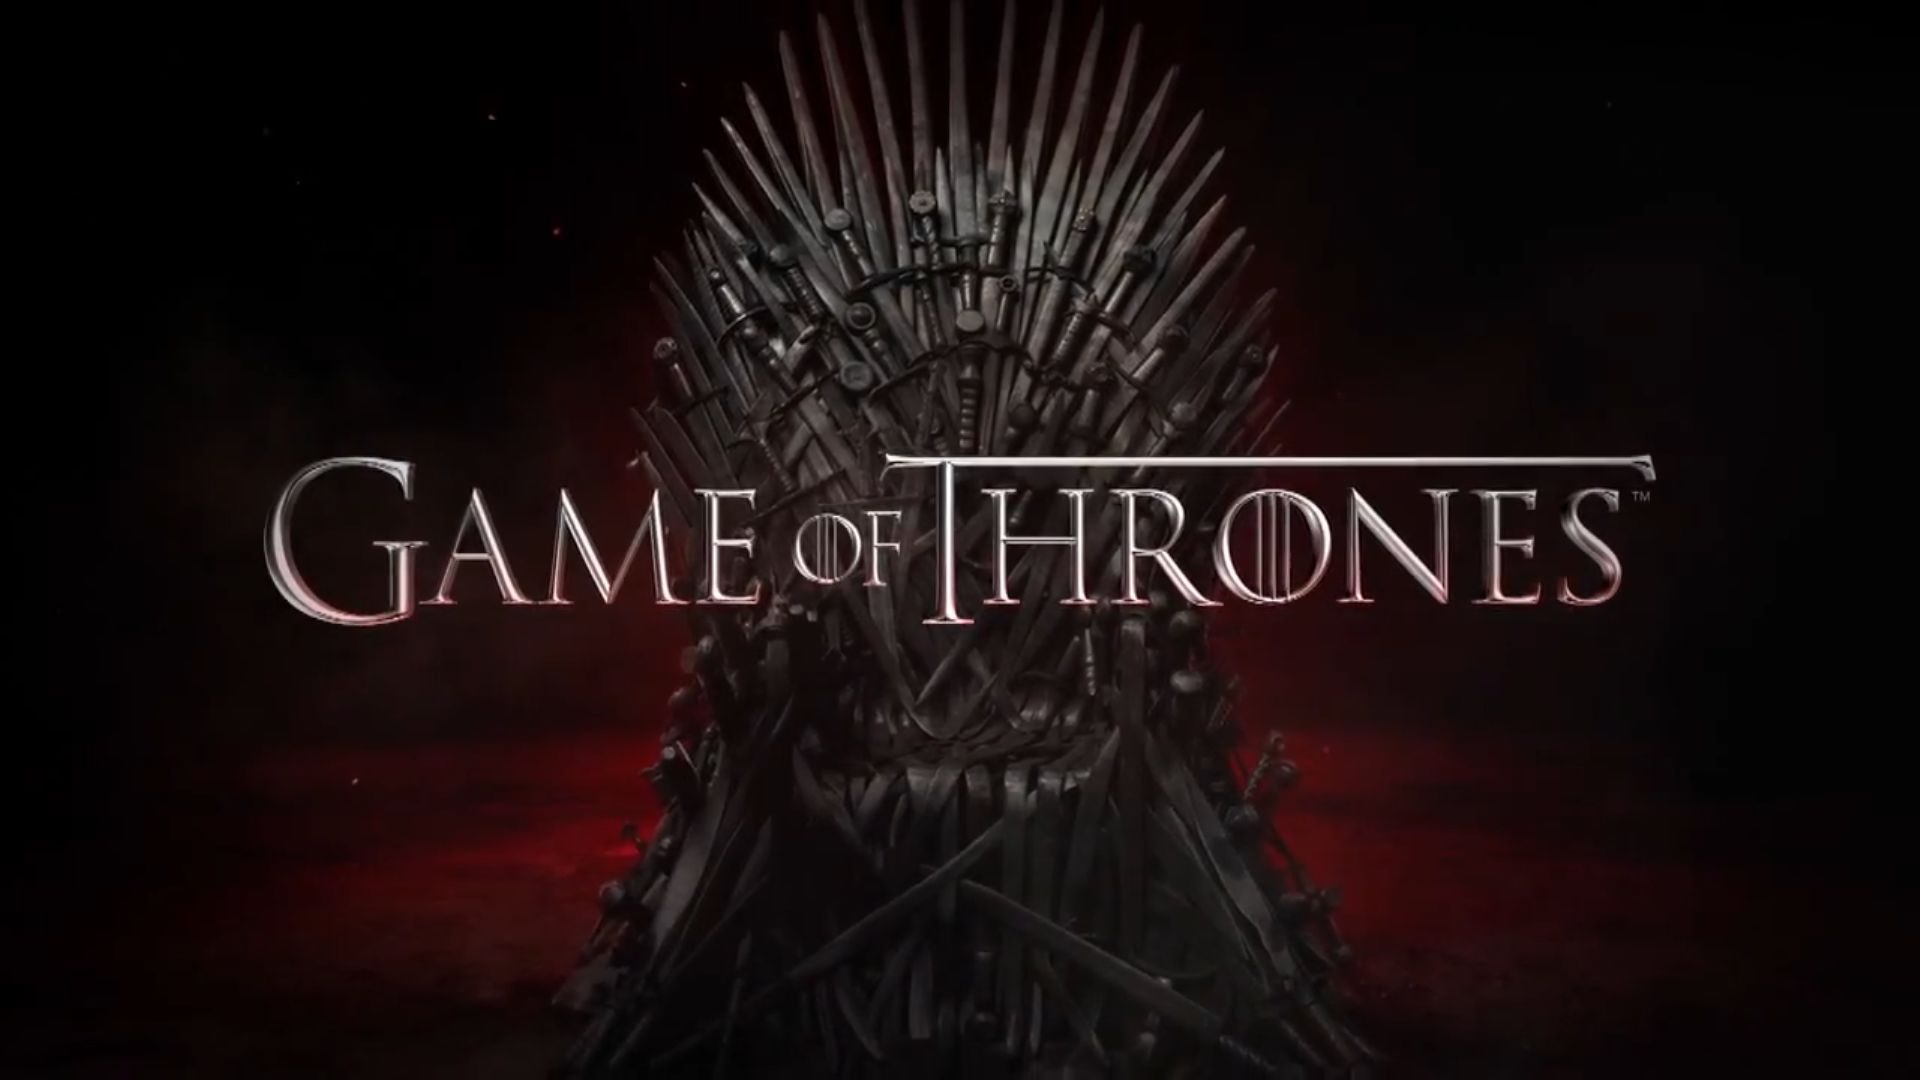 A Playlist For Fans of Game of Thrones